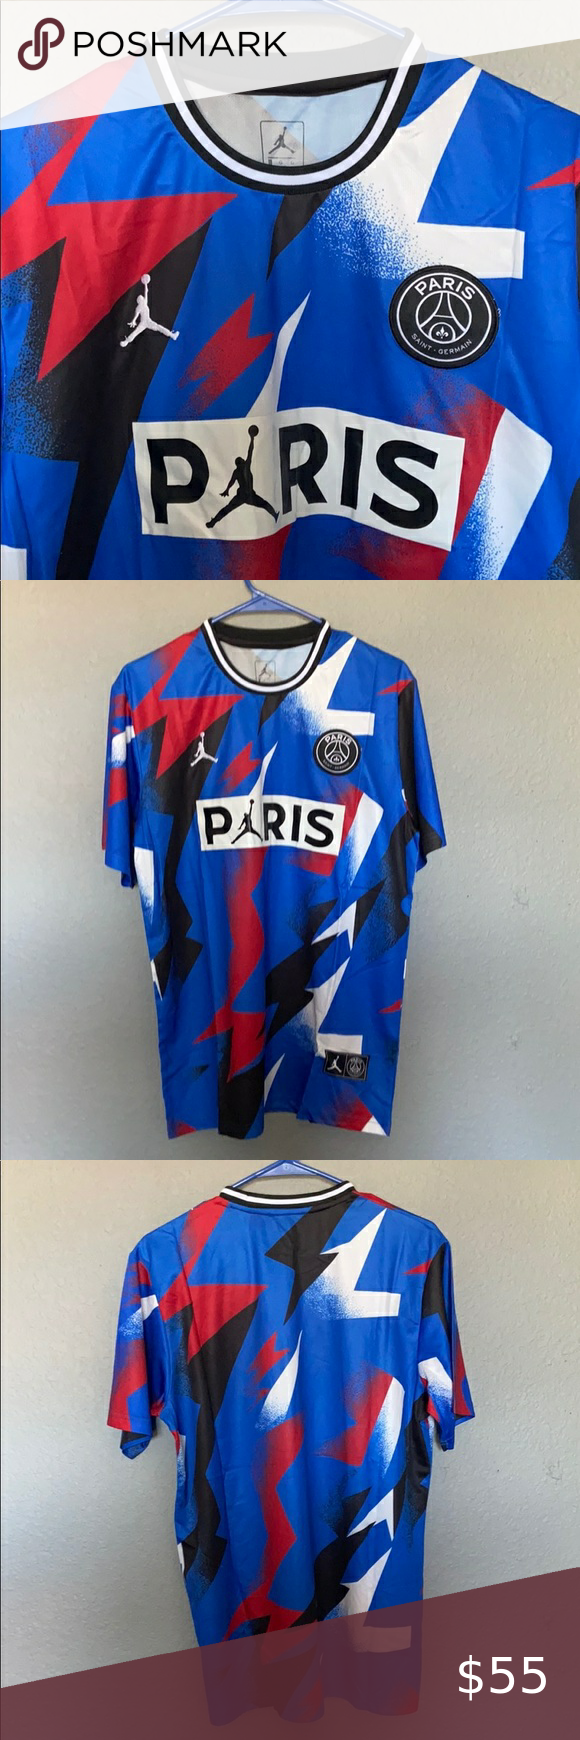 Psg Paris Saint Germain Jordan Jersey Rare Paris Saint Germain Jordan Jersey Jordan Shirts